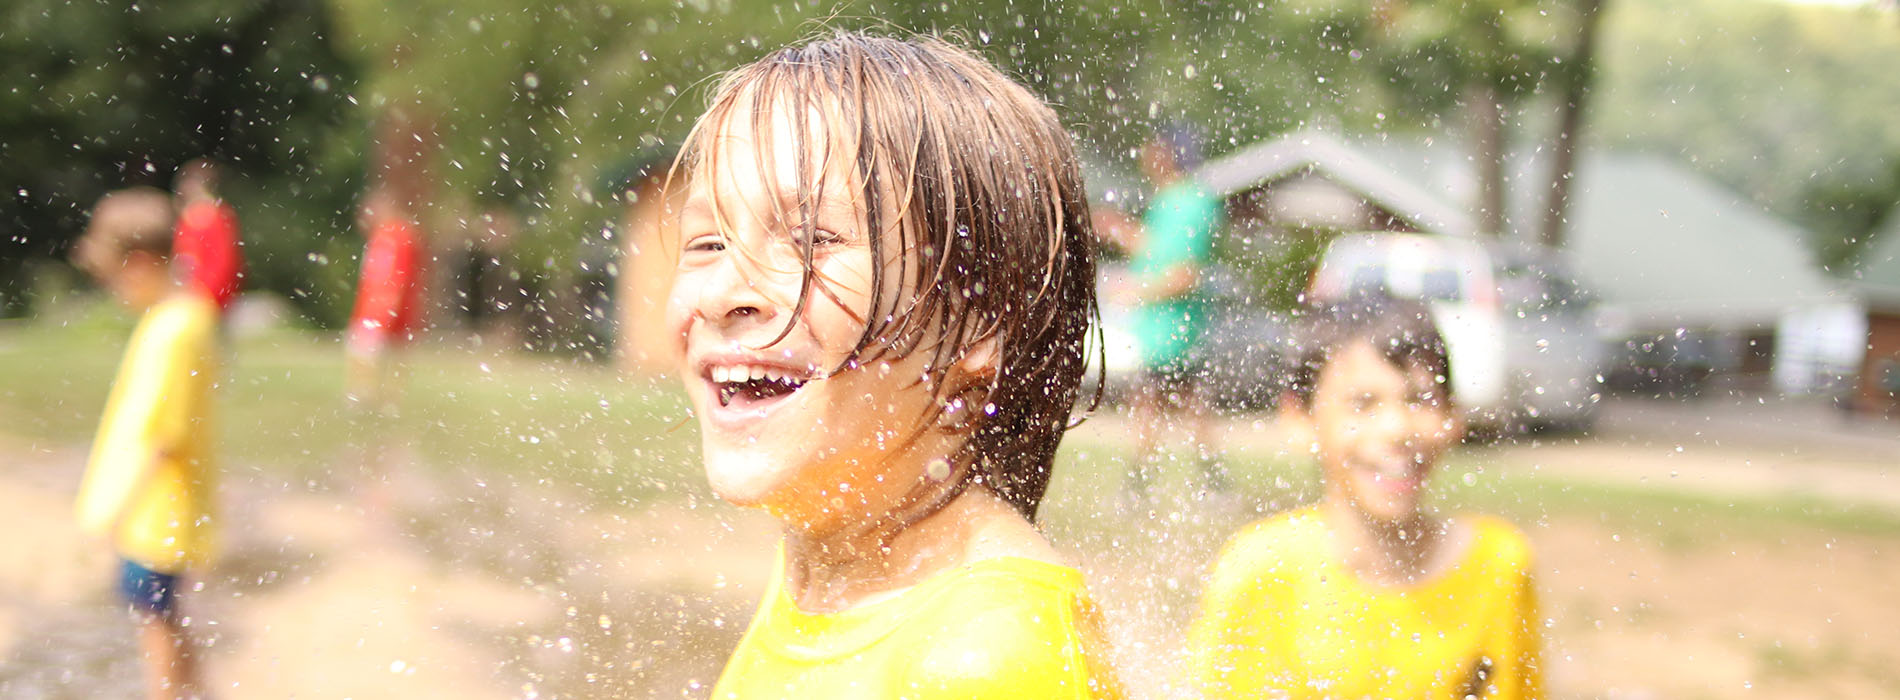 Camper smiling with water droplets falling